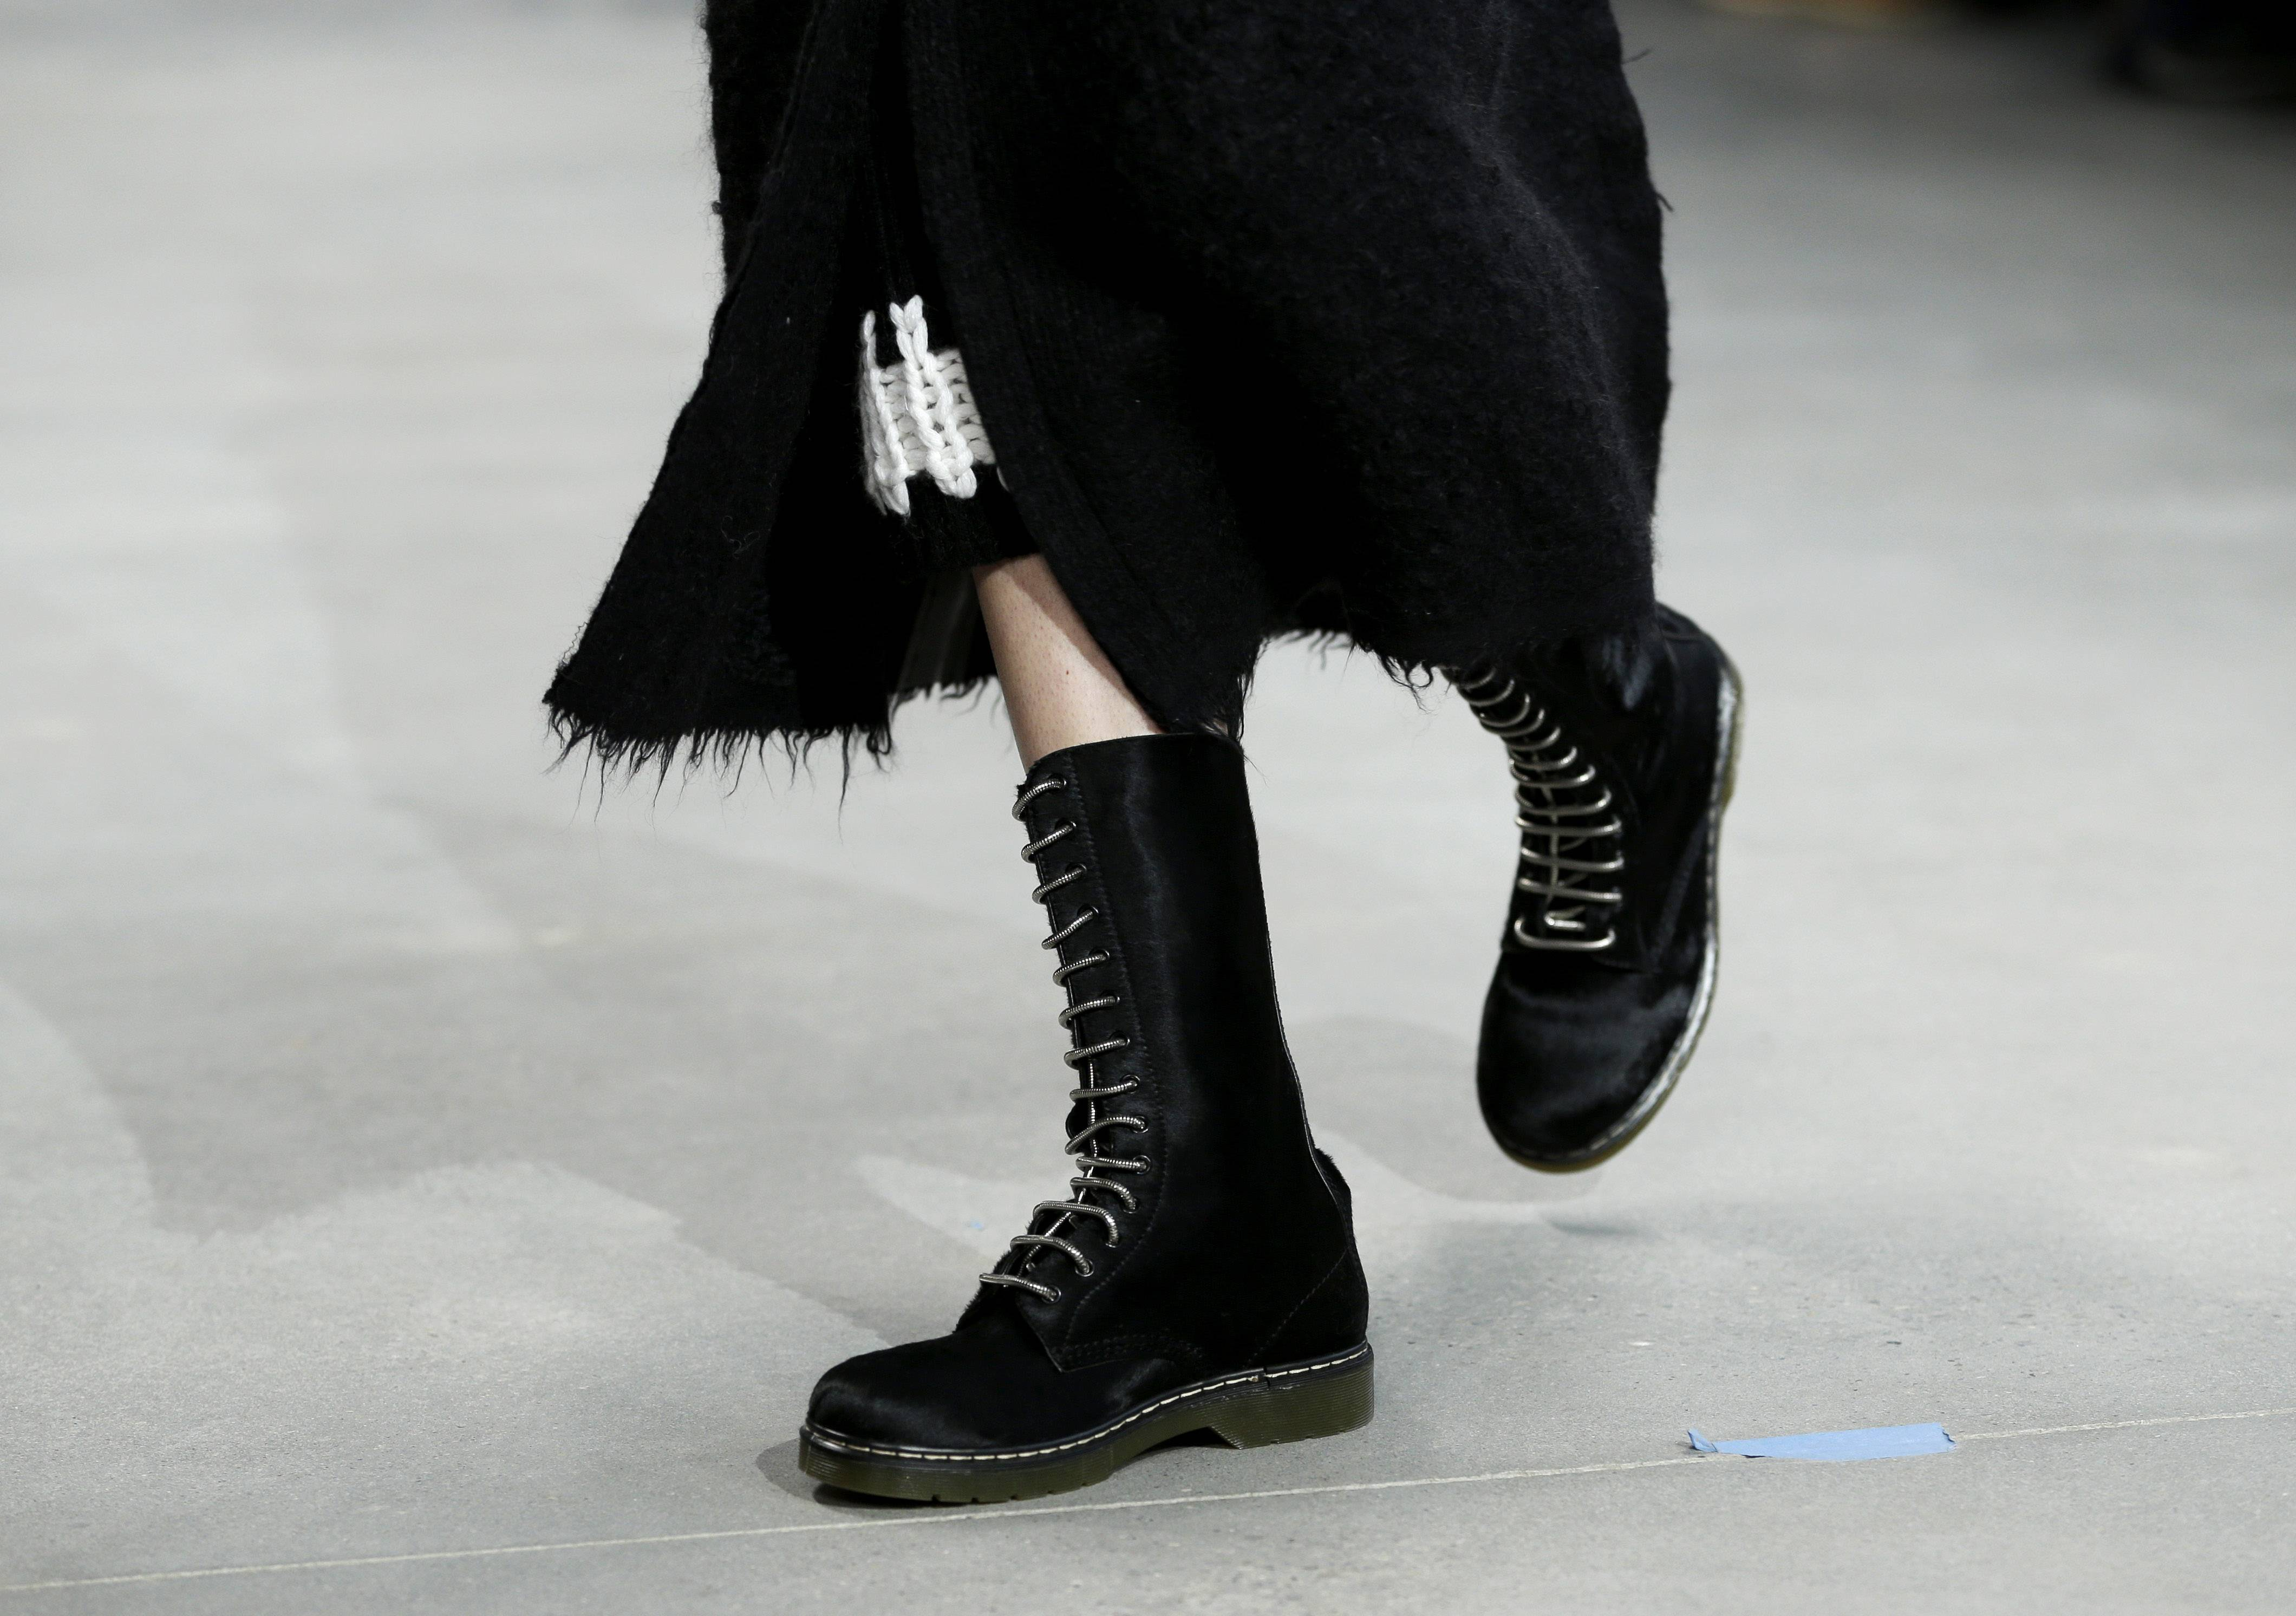 Hiking boots, like these from Calvin Klein, are predicted to be popular this fall.